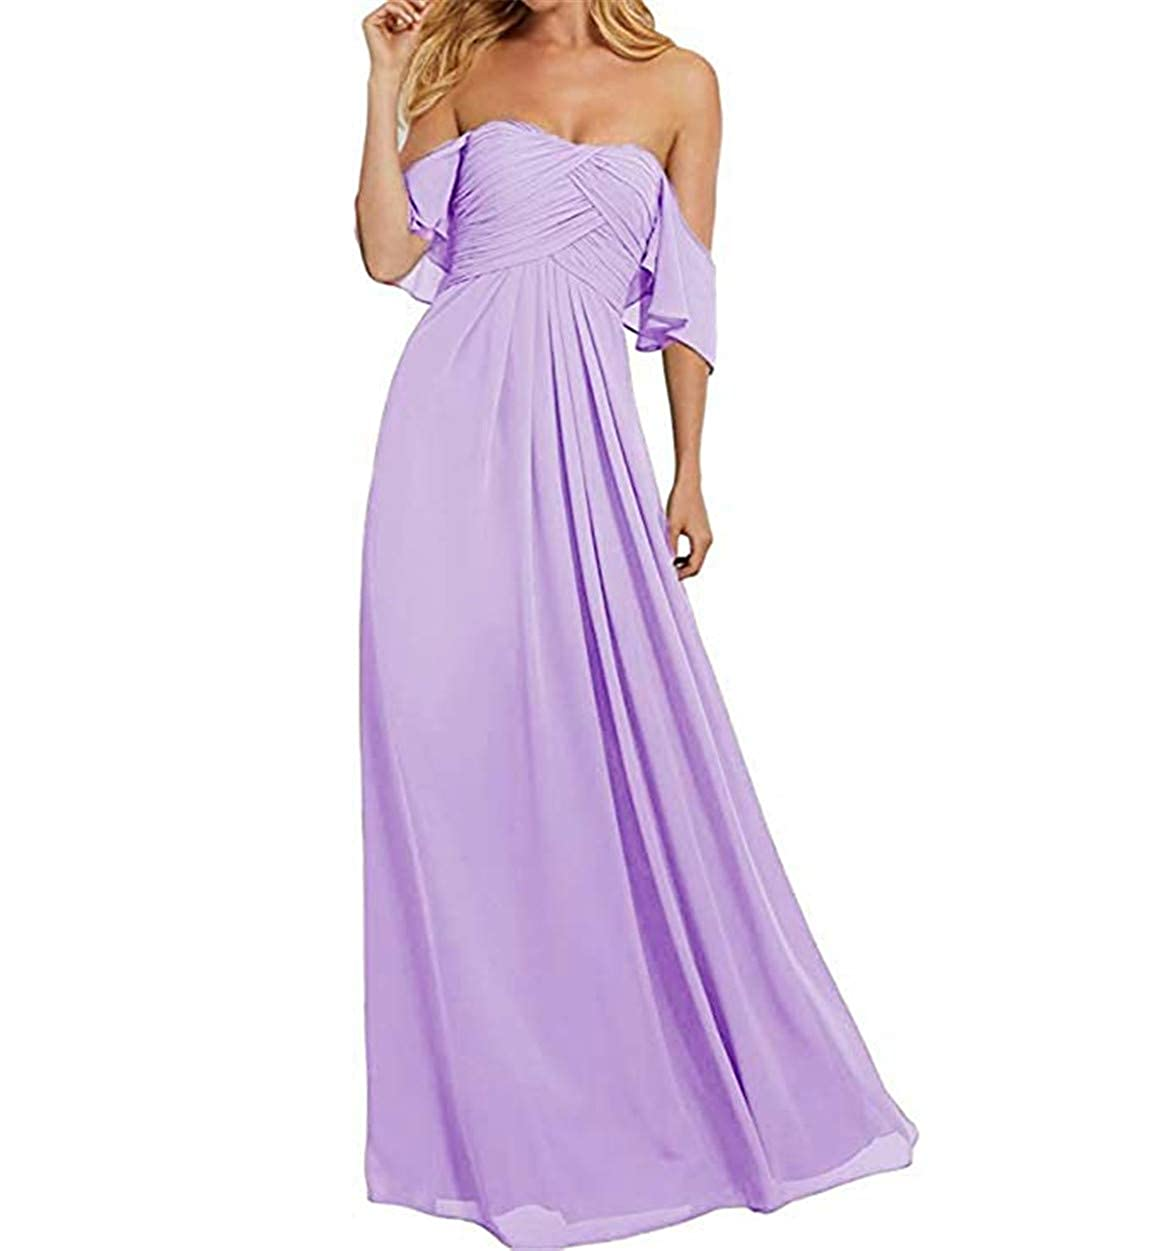 Lavender Ruiyuhong Women's Off The Shoulder Bridesmaid Dresses Long Ruffles Wedding Party Gown